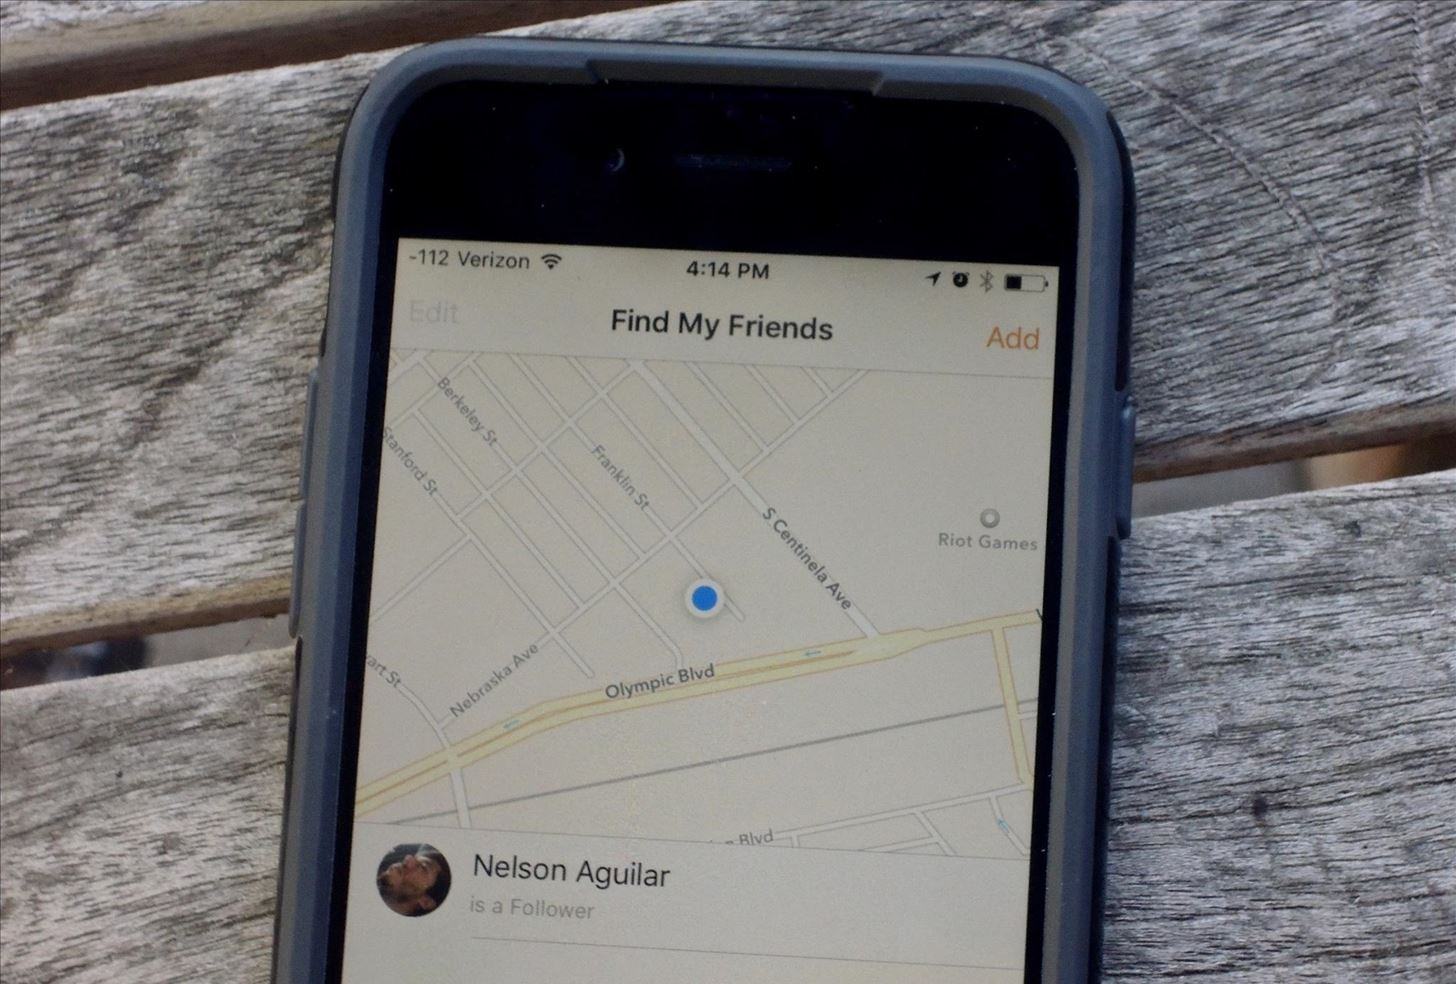 How to Secretly Track Someone's Location Using Your iPhone